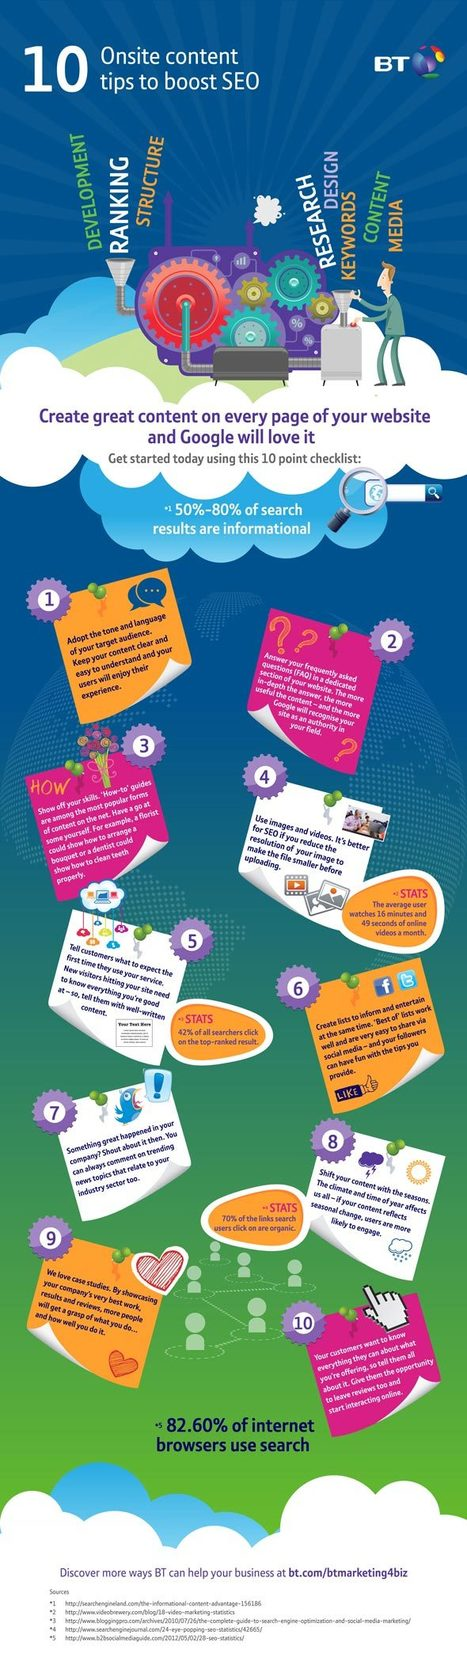 10 content tips to boost SEO [Infographic]   Internet Marketing, SEO   Scoop.it